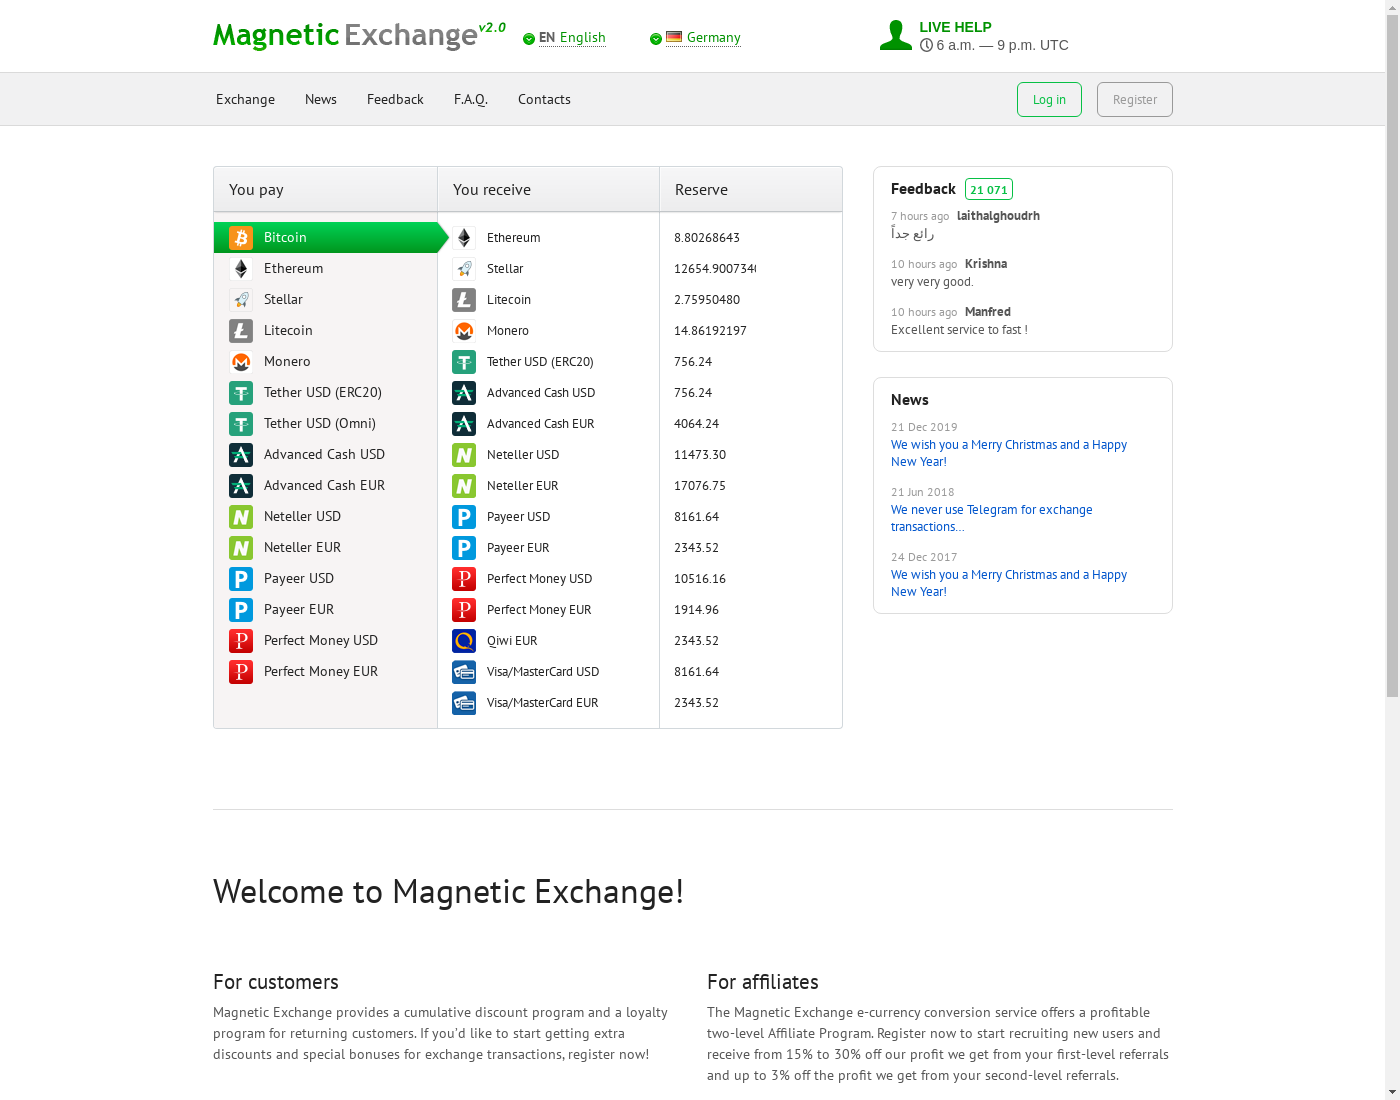 MagneticExchange user interface: the home page in English